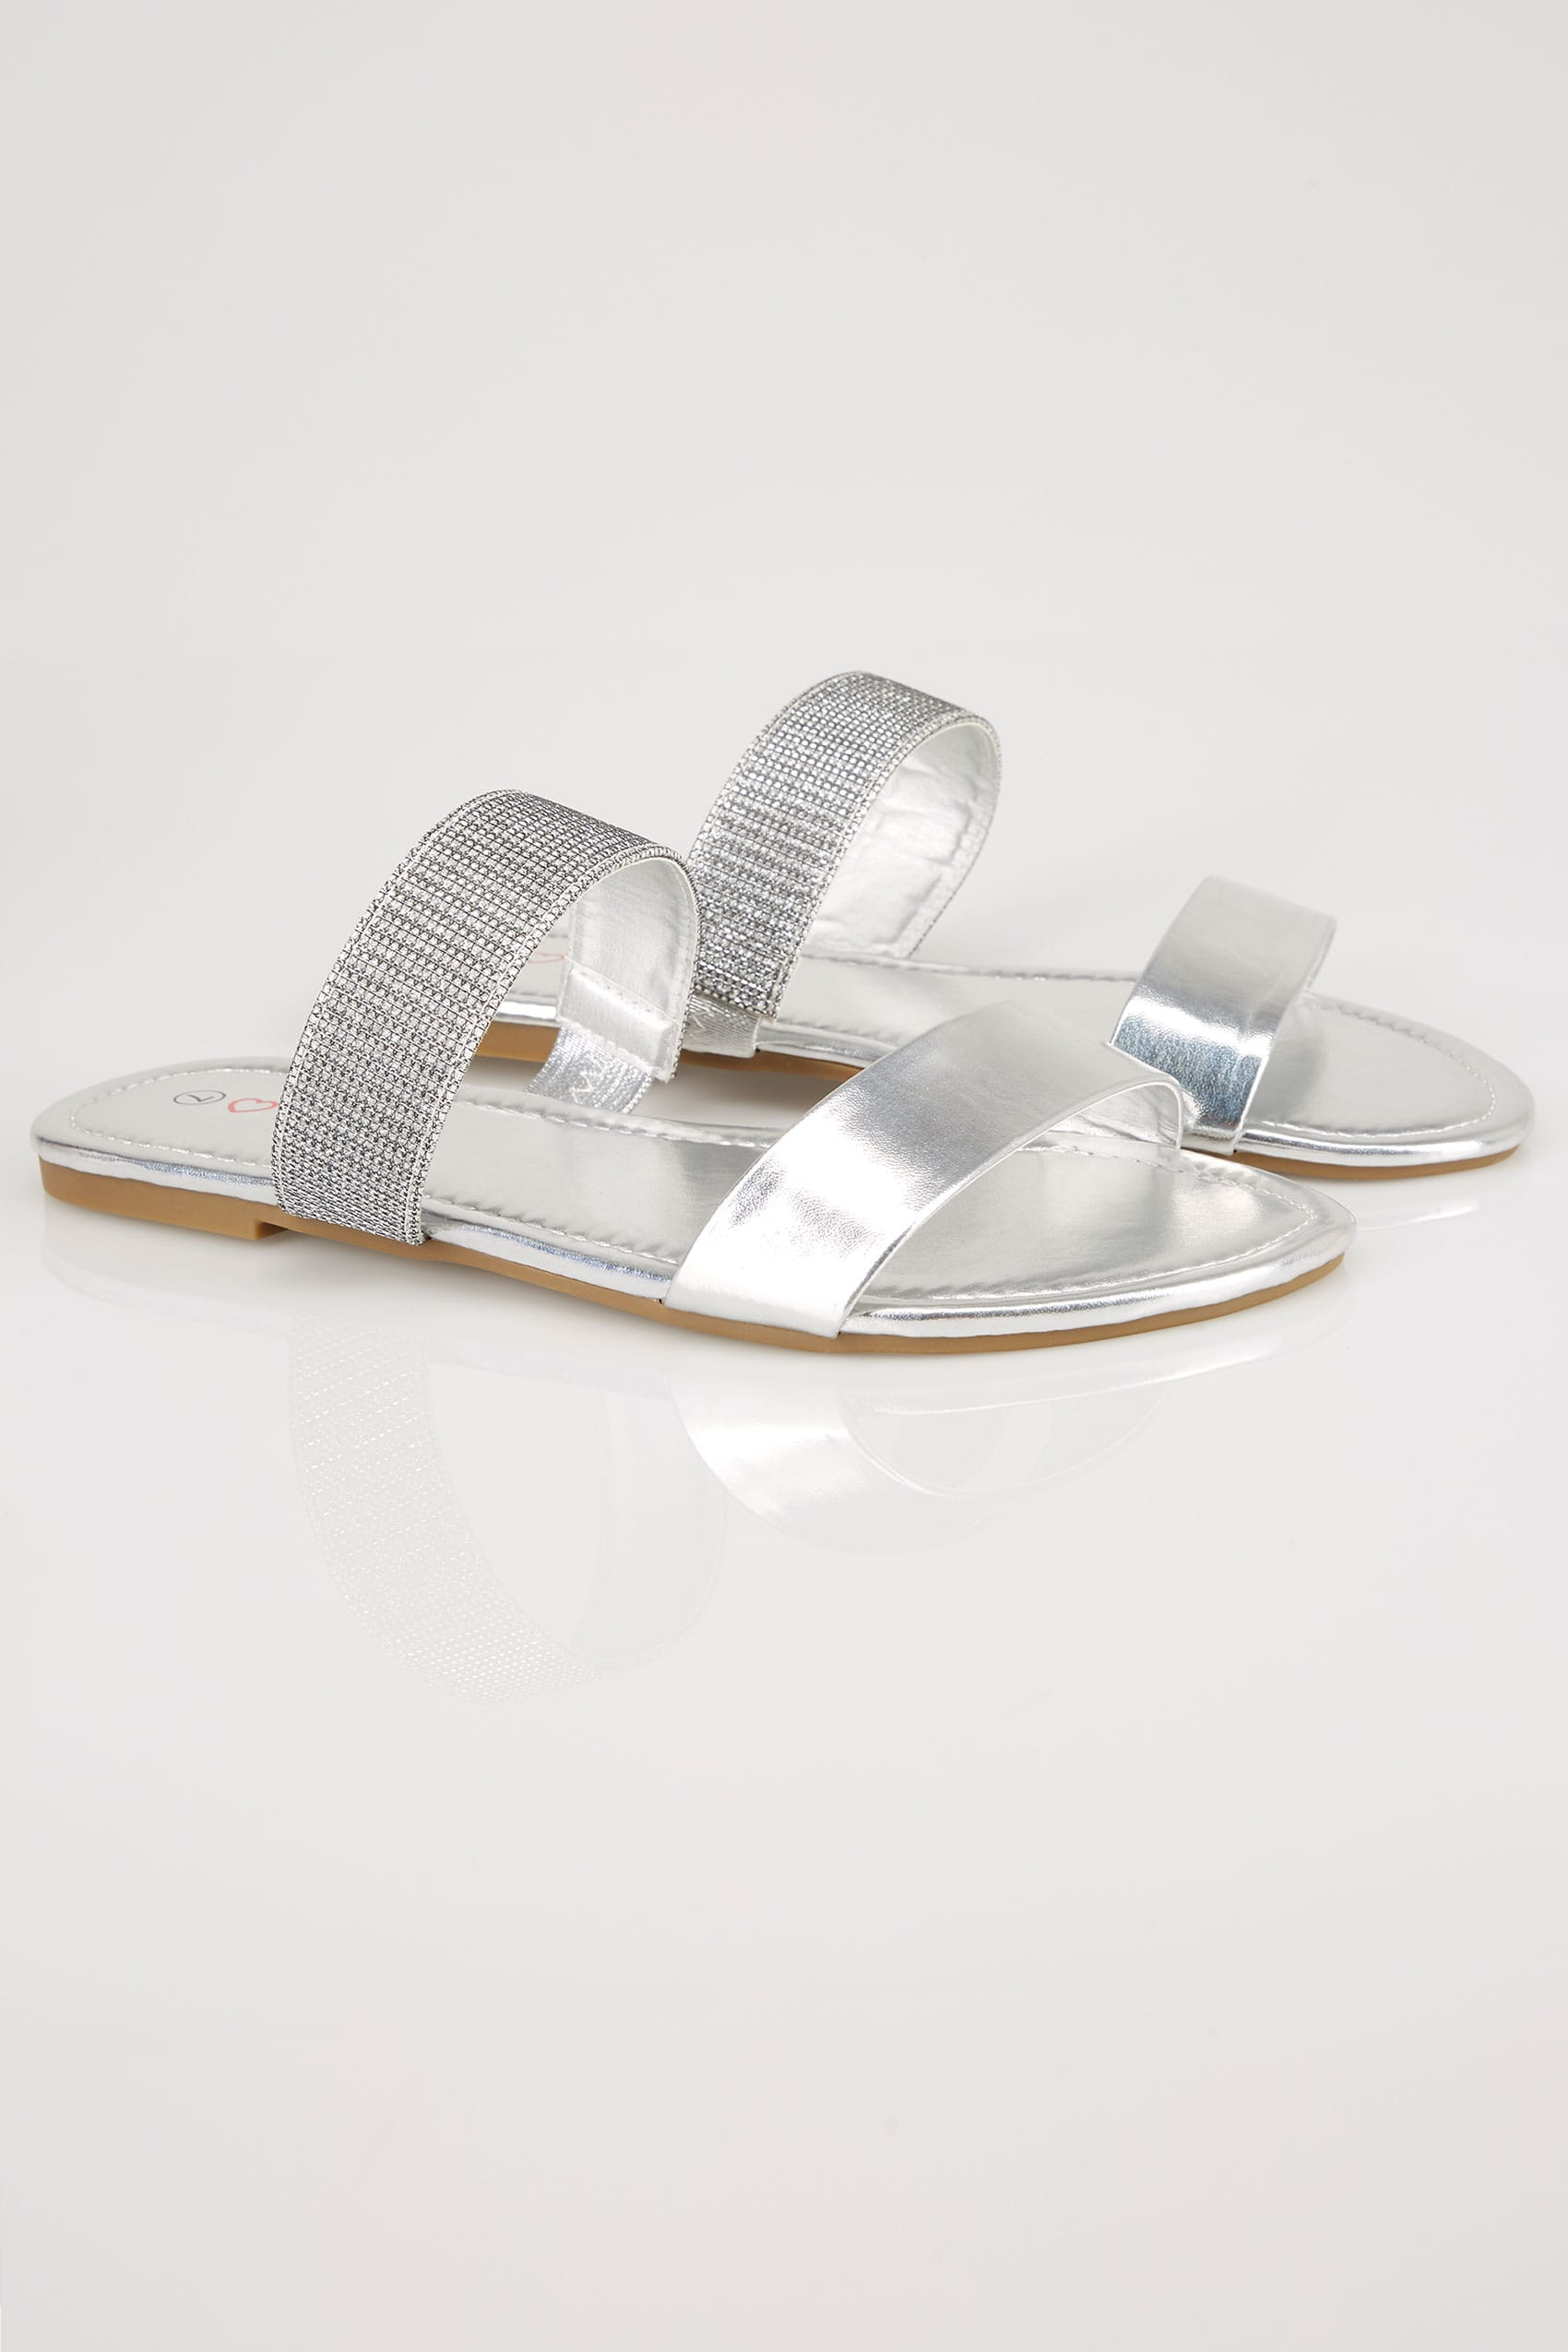 Silver Double Strap Slider Sandals In Eee Fit-4195